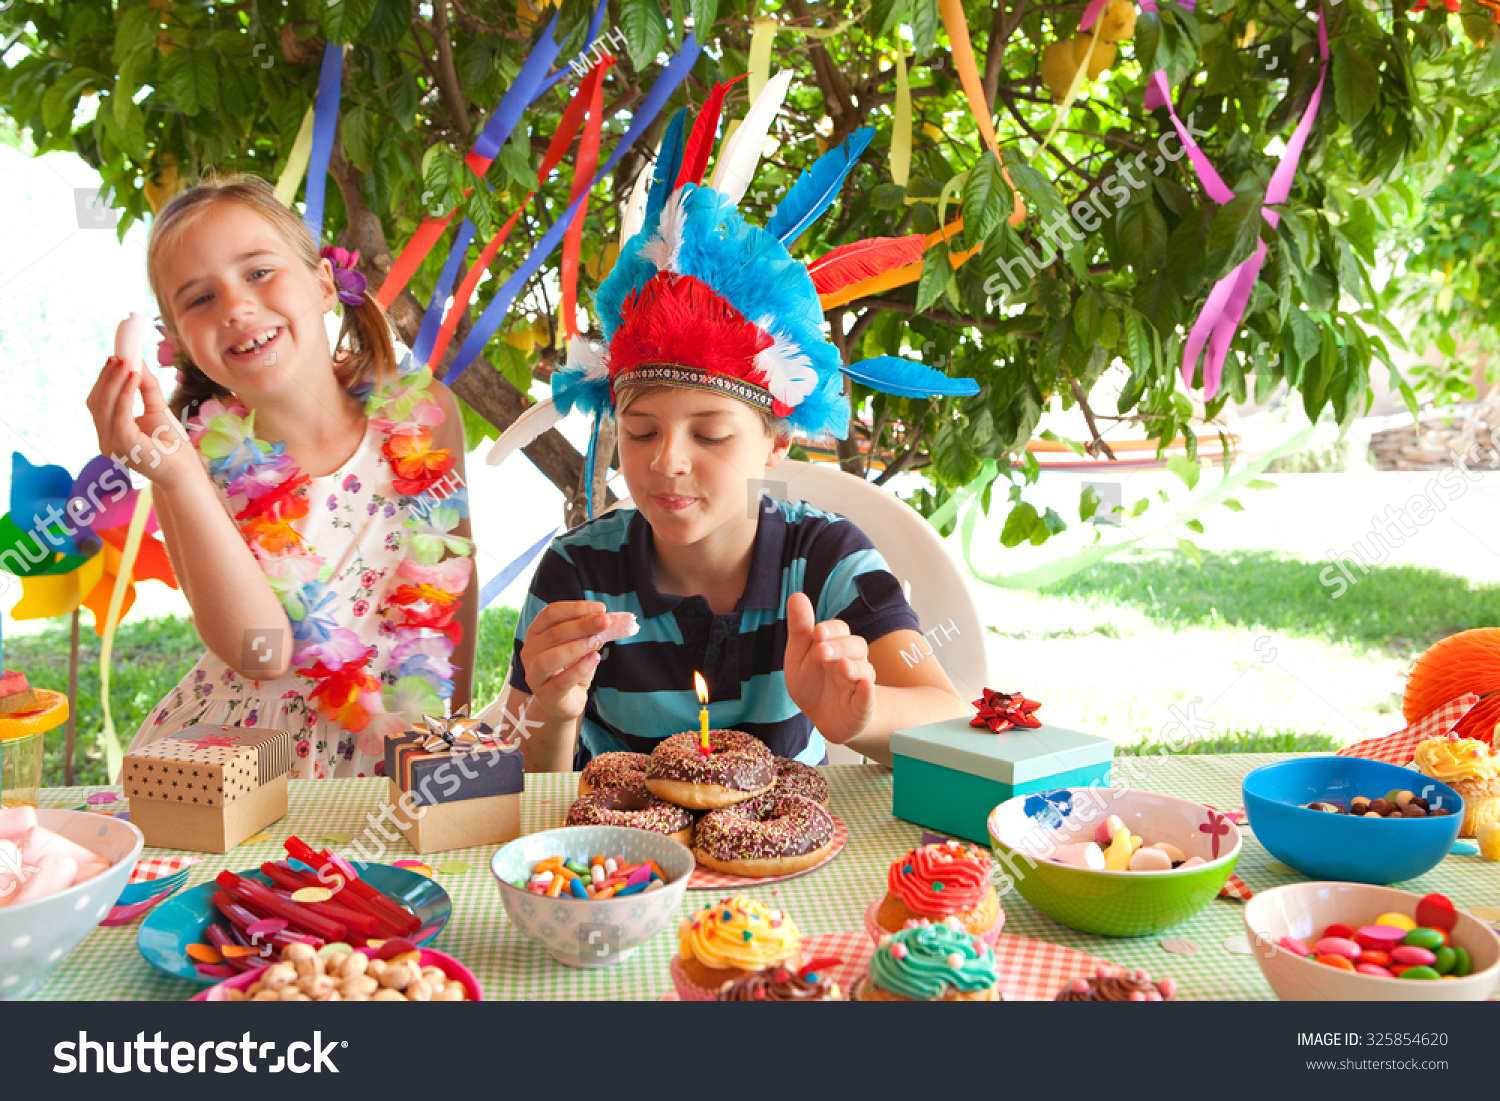 Portrait of children dressing up in fancy dresses at a Home and garden party